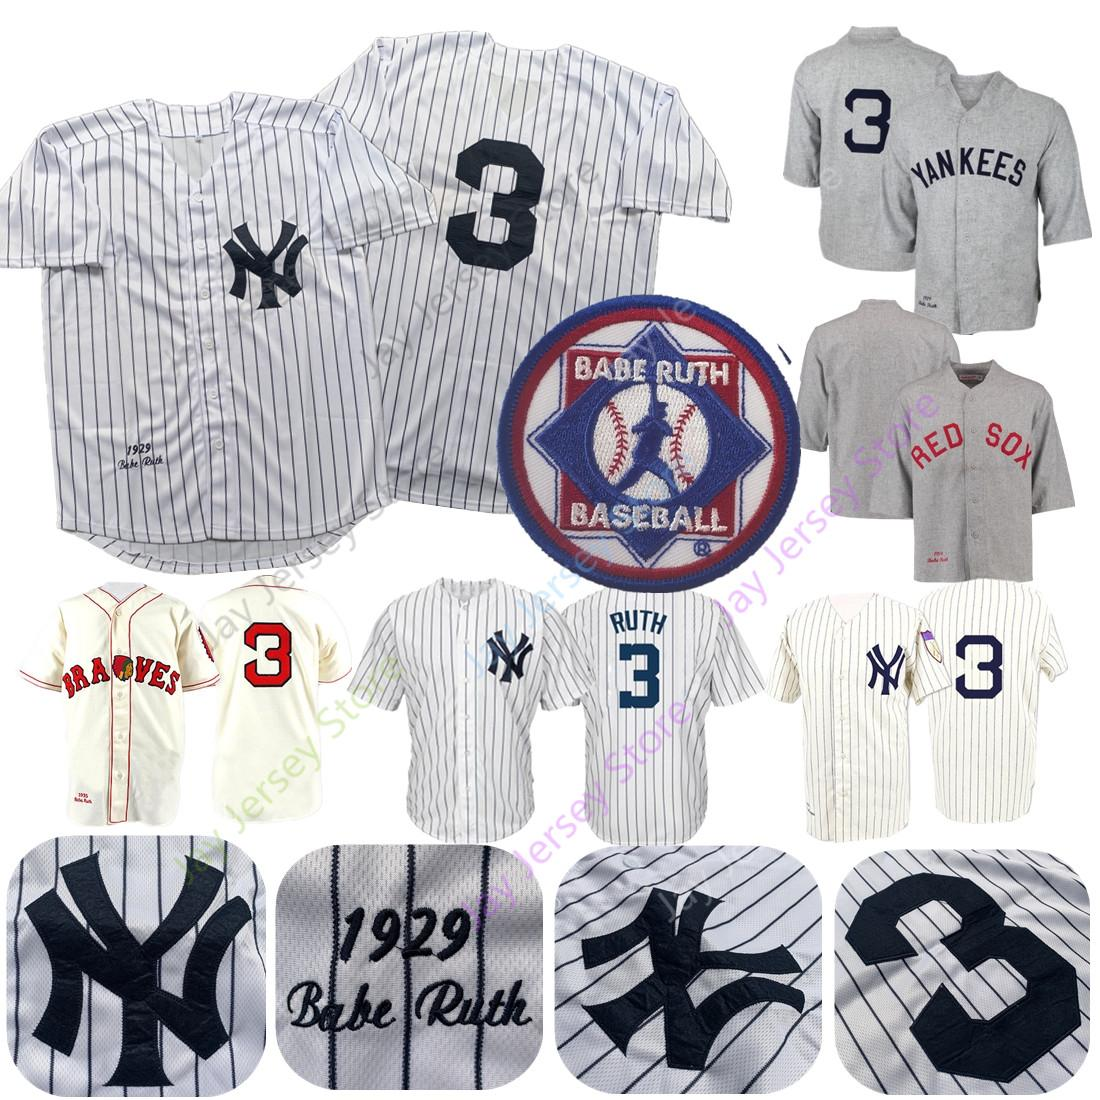 sale retailer ab91b 84f8c Babe Ruth Jersey Men Women Youth Yankees 1929 Cooperstown Boston Braves  Cream White Pinstripe Grey Black Home Away All Stitched